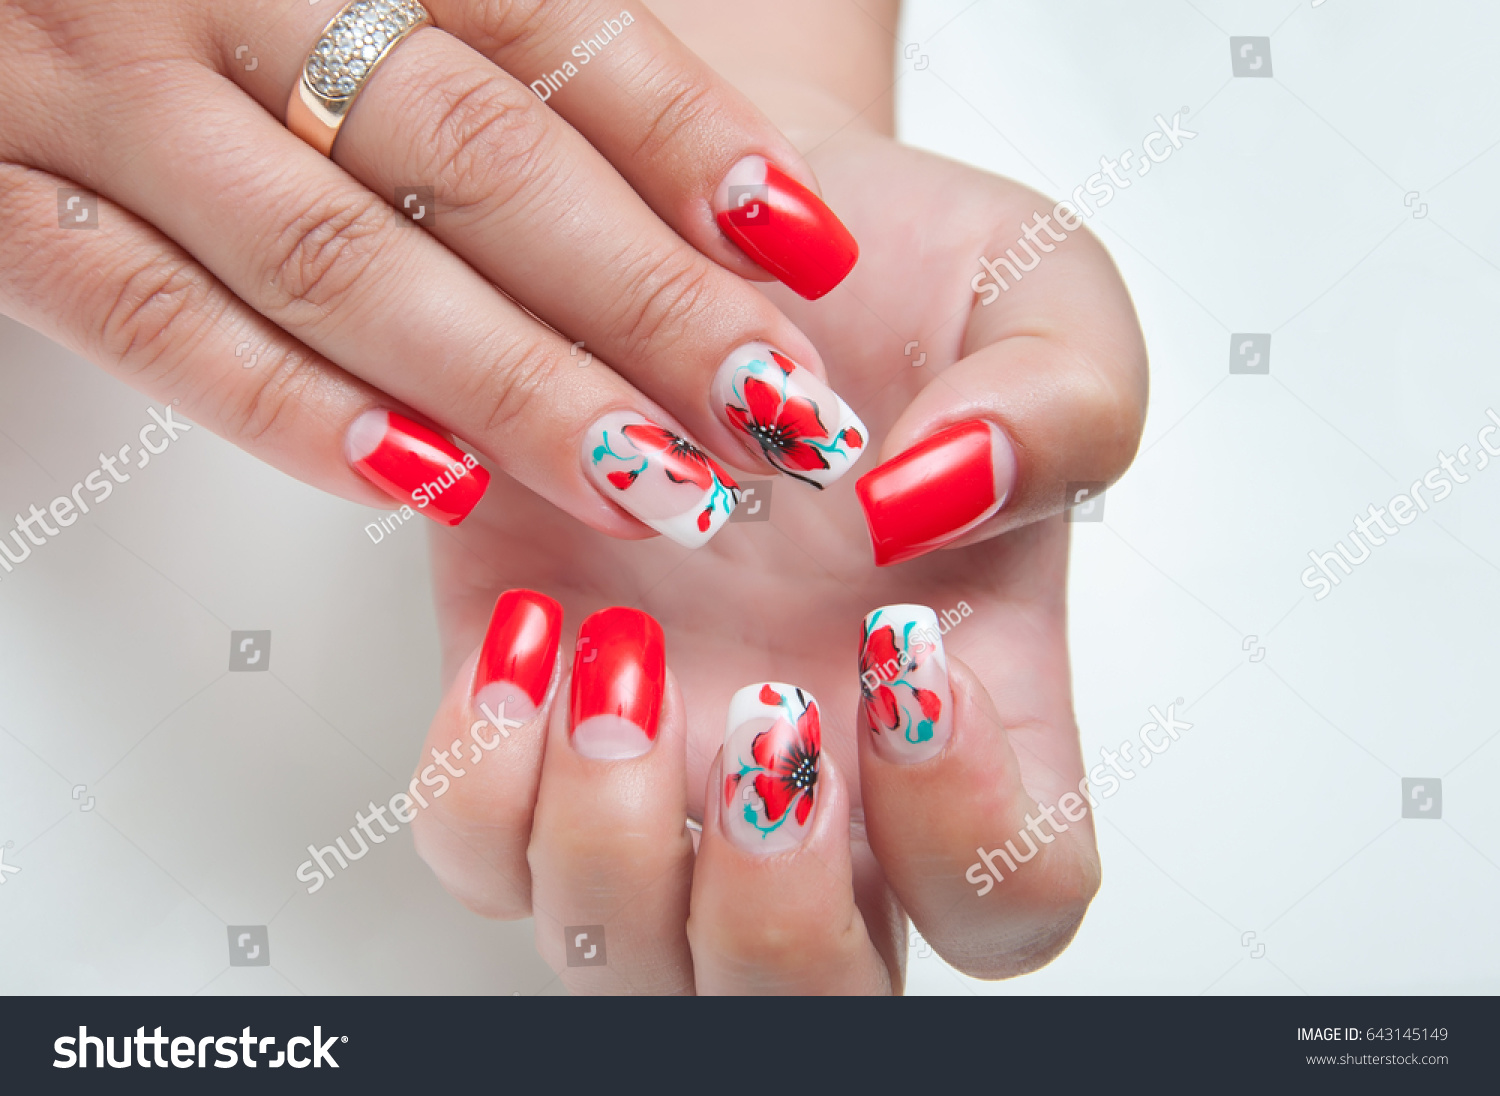 Red Manicure On Long Square Nails Stock Photo (Edit Now) 643145149 ...